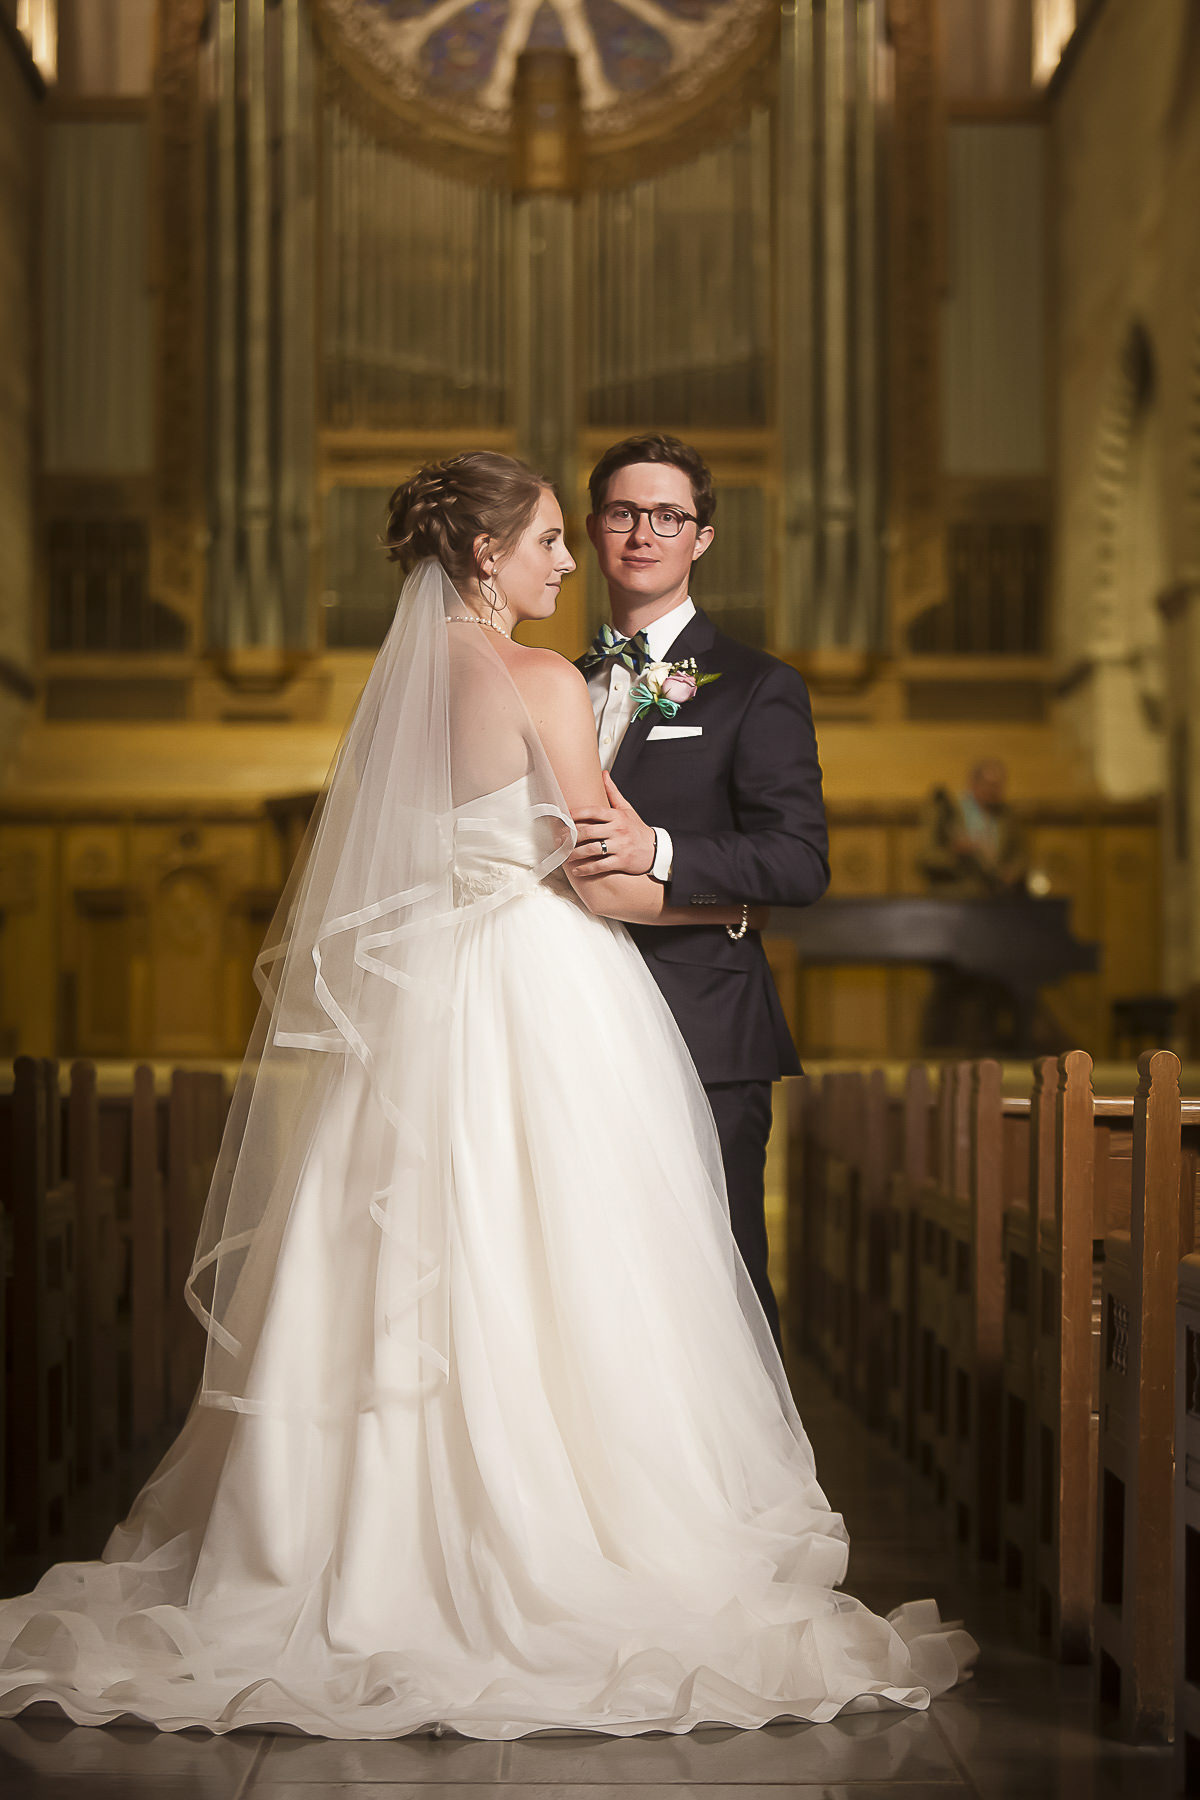 Bride and groom full-length portrait in the aisle after their Shove Chapel wedding celebration